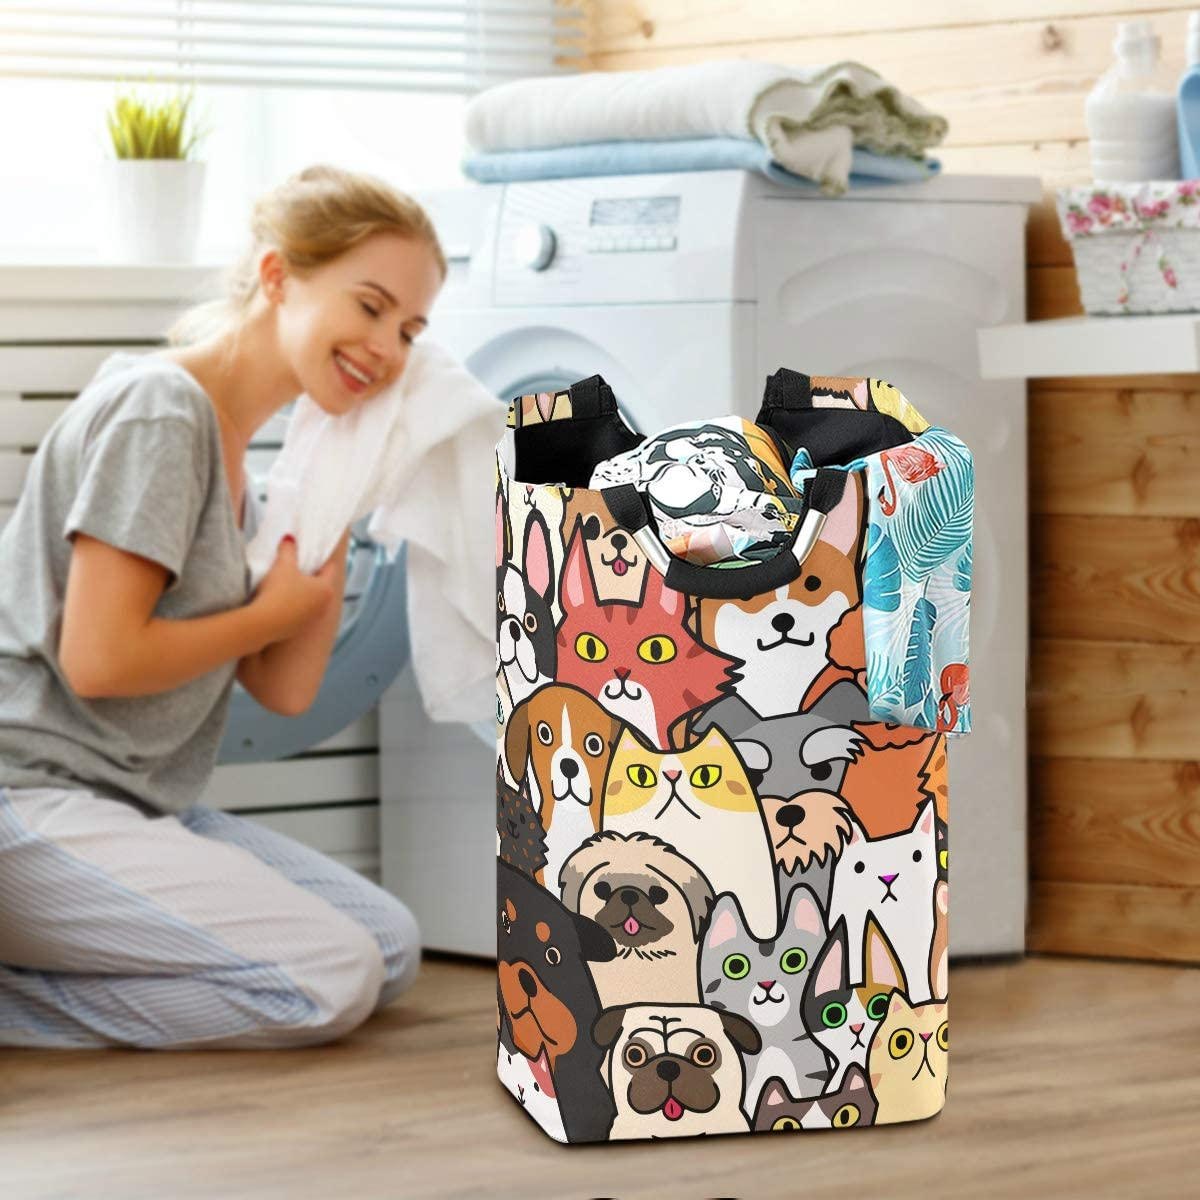 Doodle Dogs and Cats Faces Collapsible Laundry Hamper Large Capacity Large Basket for Bathroom Clothing Organization RunningBear Laundry Basket Washing Clothes Hamper